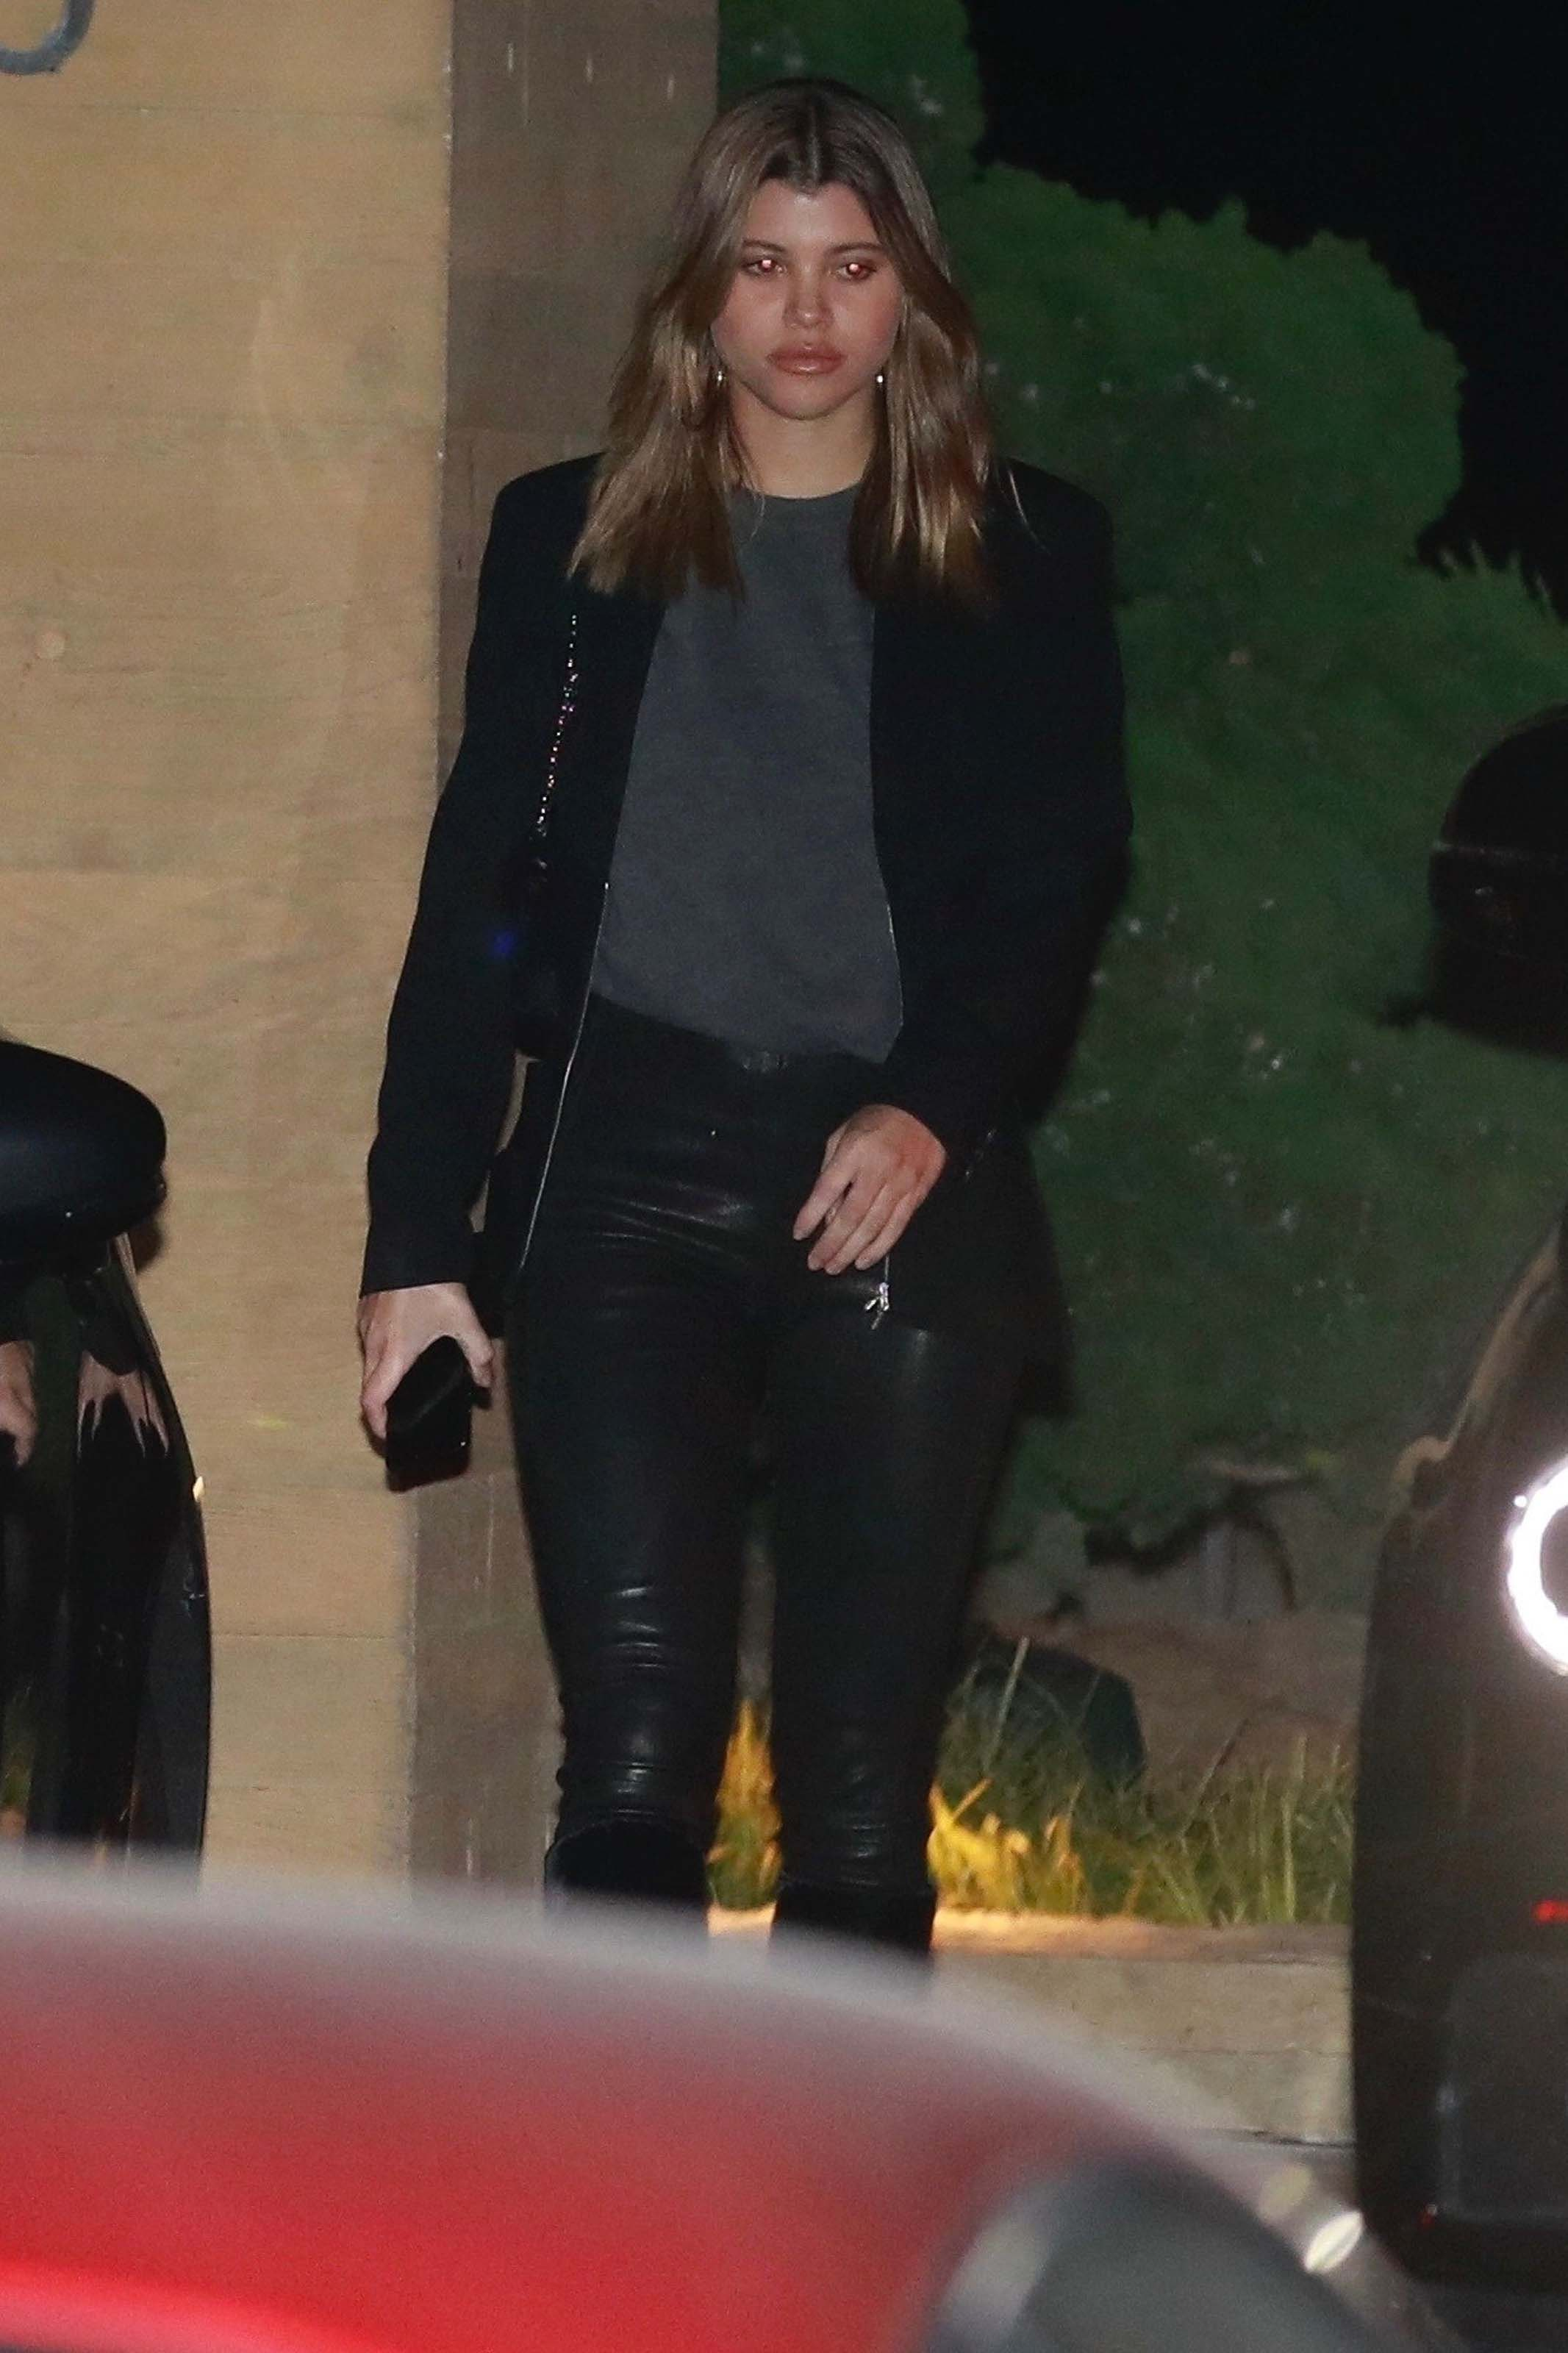 Sofia Richie leaving dinner